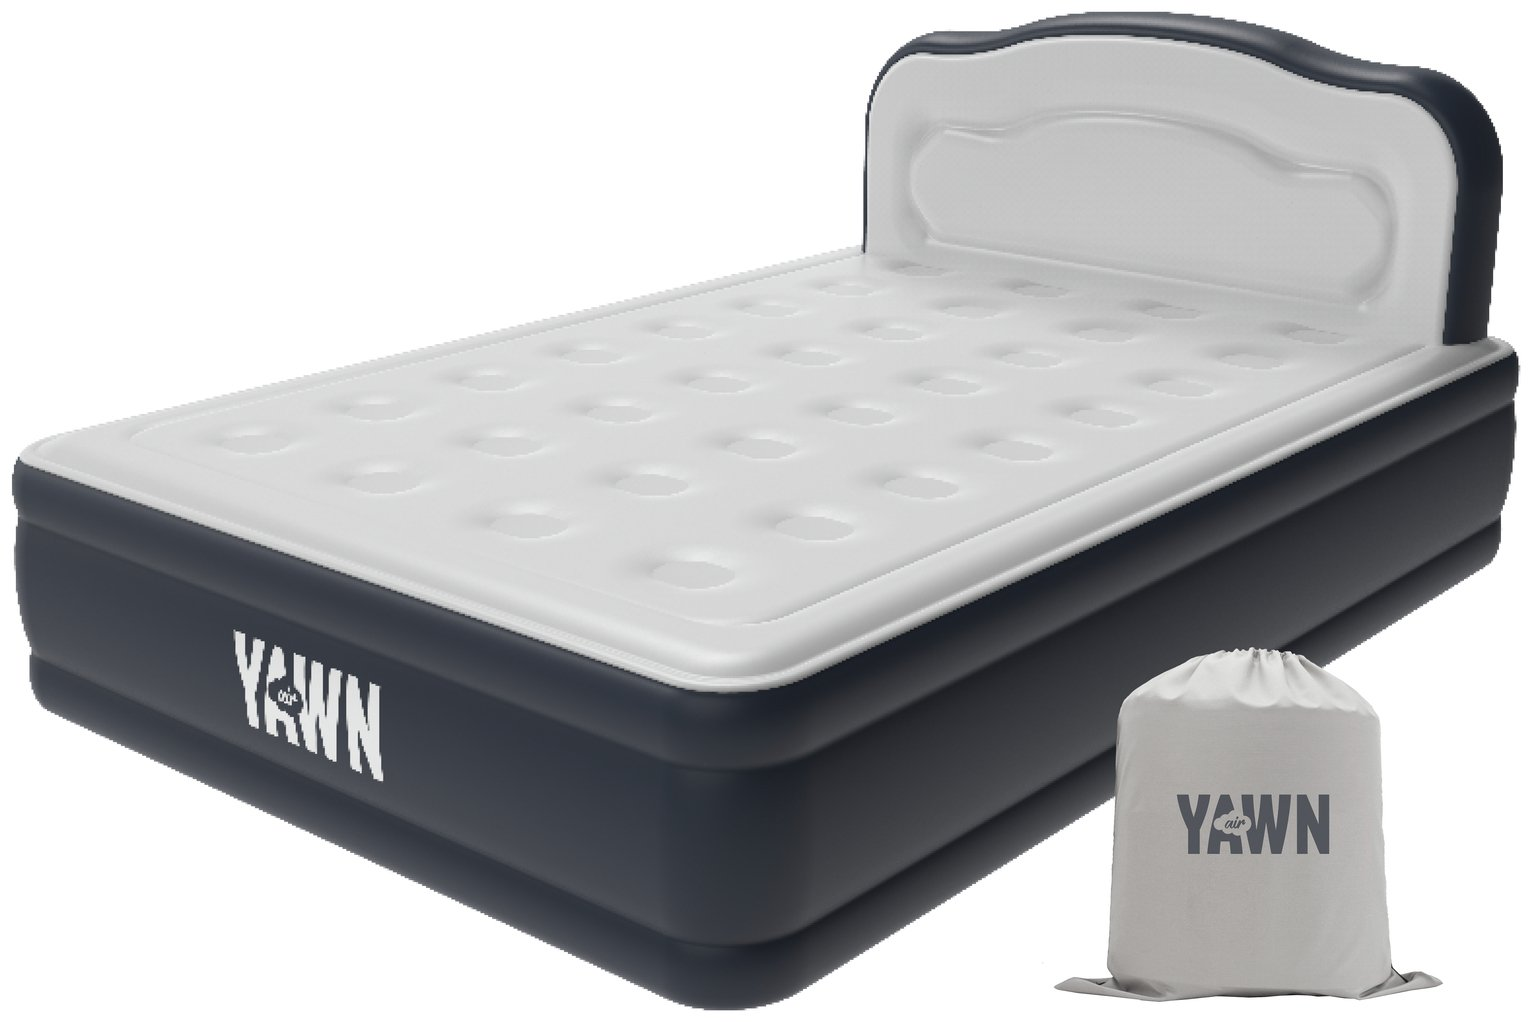 Yawn Luxury Raised Air Bed With Headboard - Double